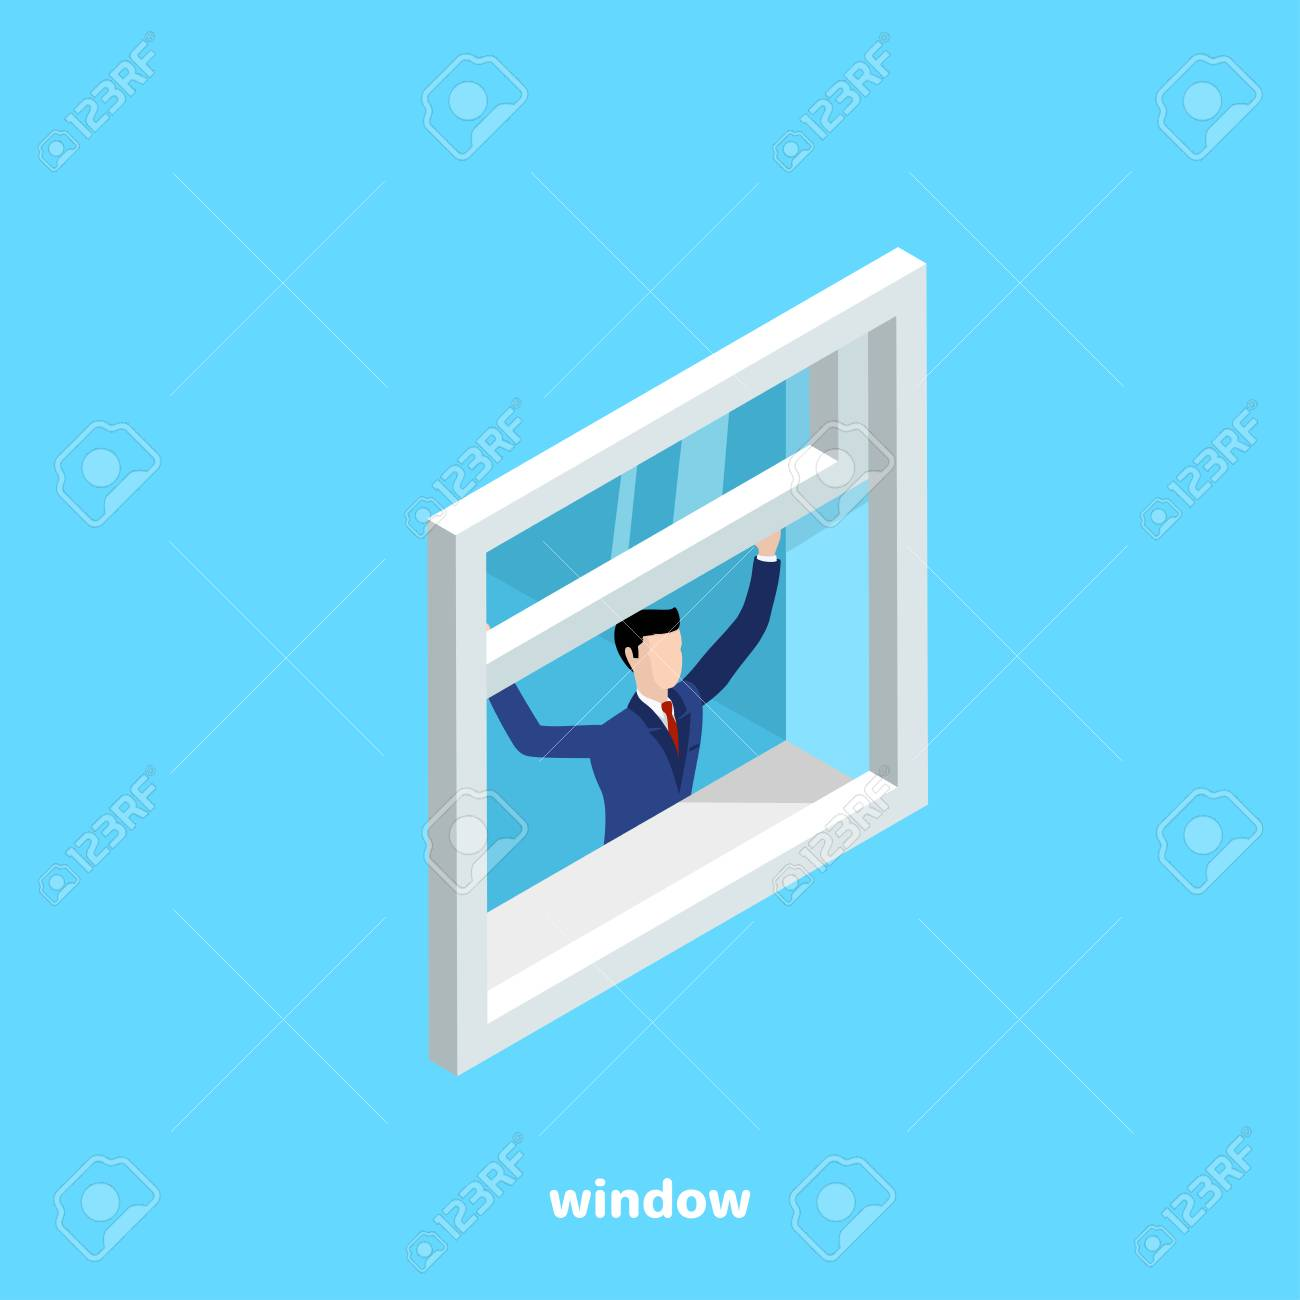 a man in a business suit opens a window on a blue background, an isometric image - 116068642